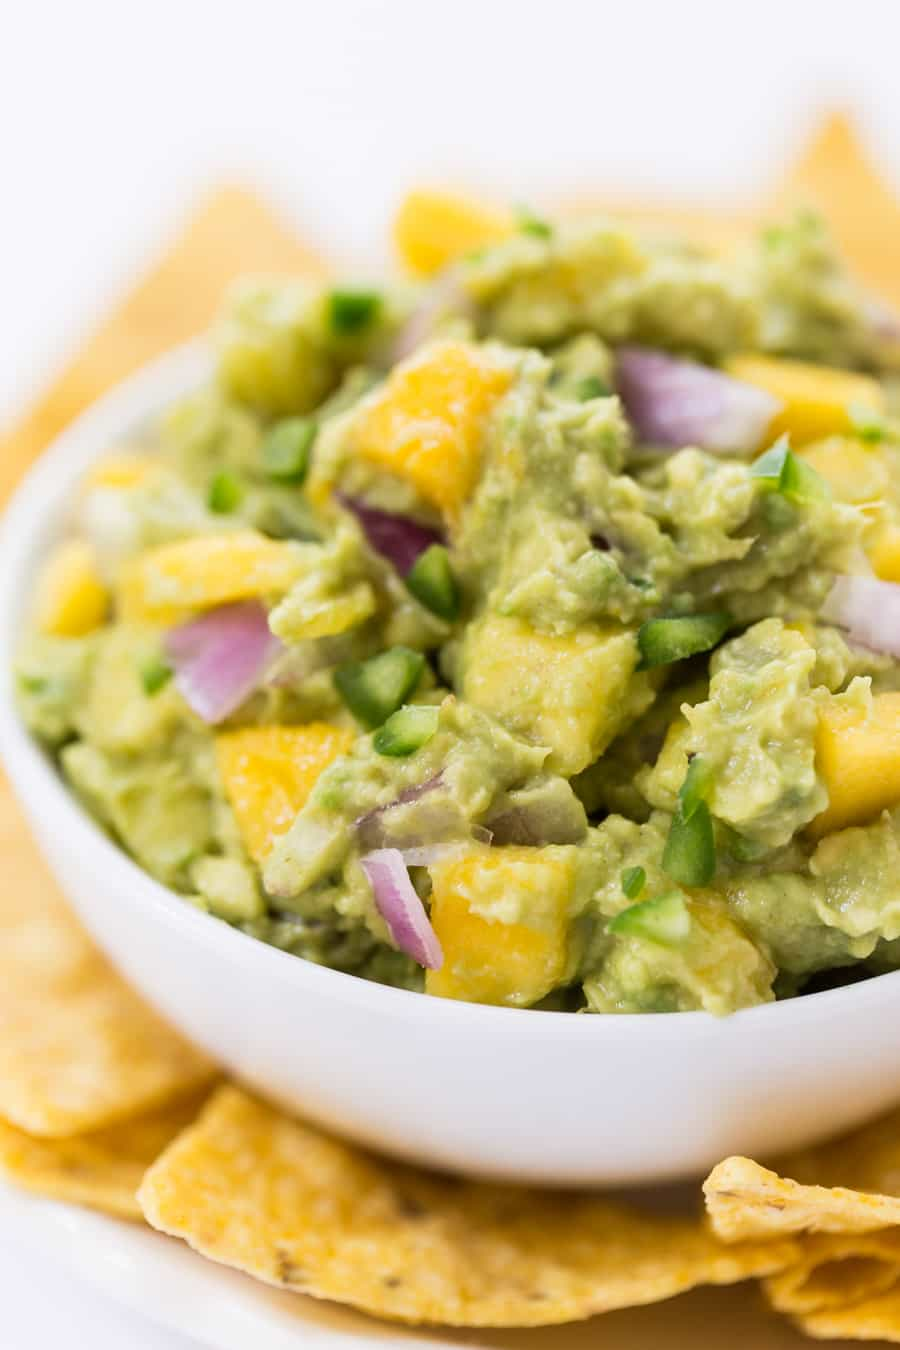 This SPICY MANGO GUACAMOLE recipe is a quick and easy spread that goes with everything. Use it on top of burgers, dip with chips or spread it on some toast!